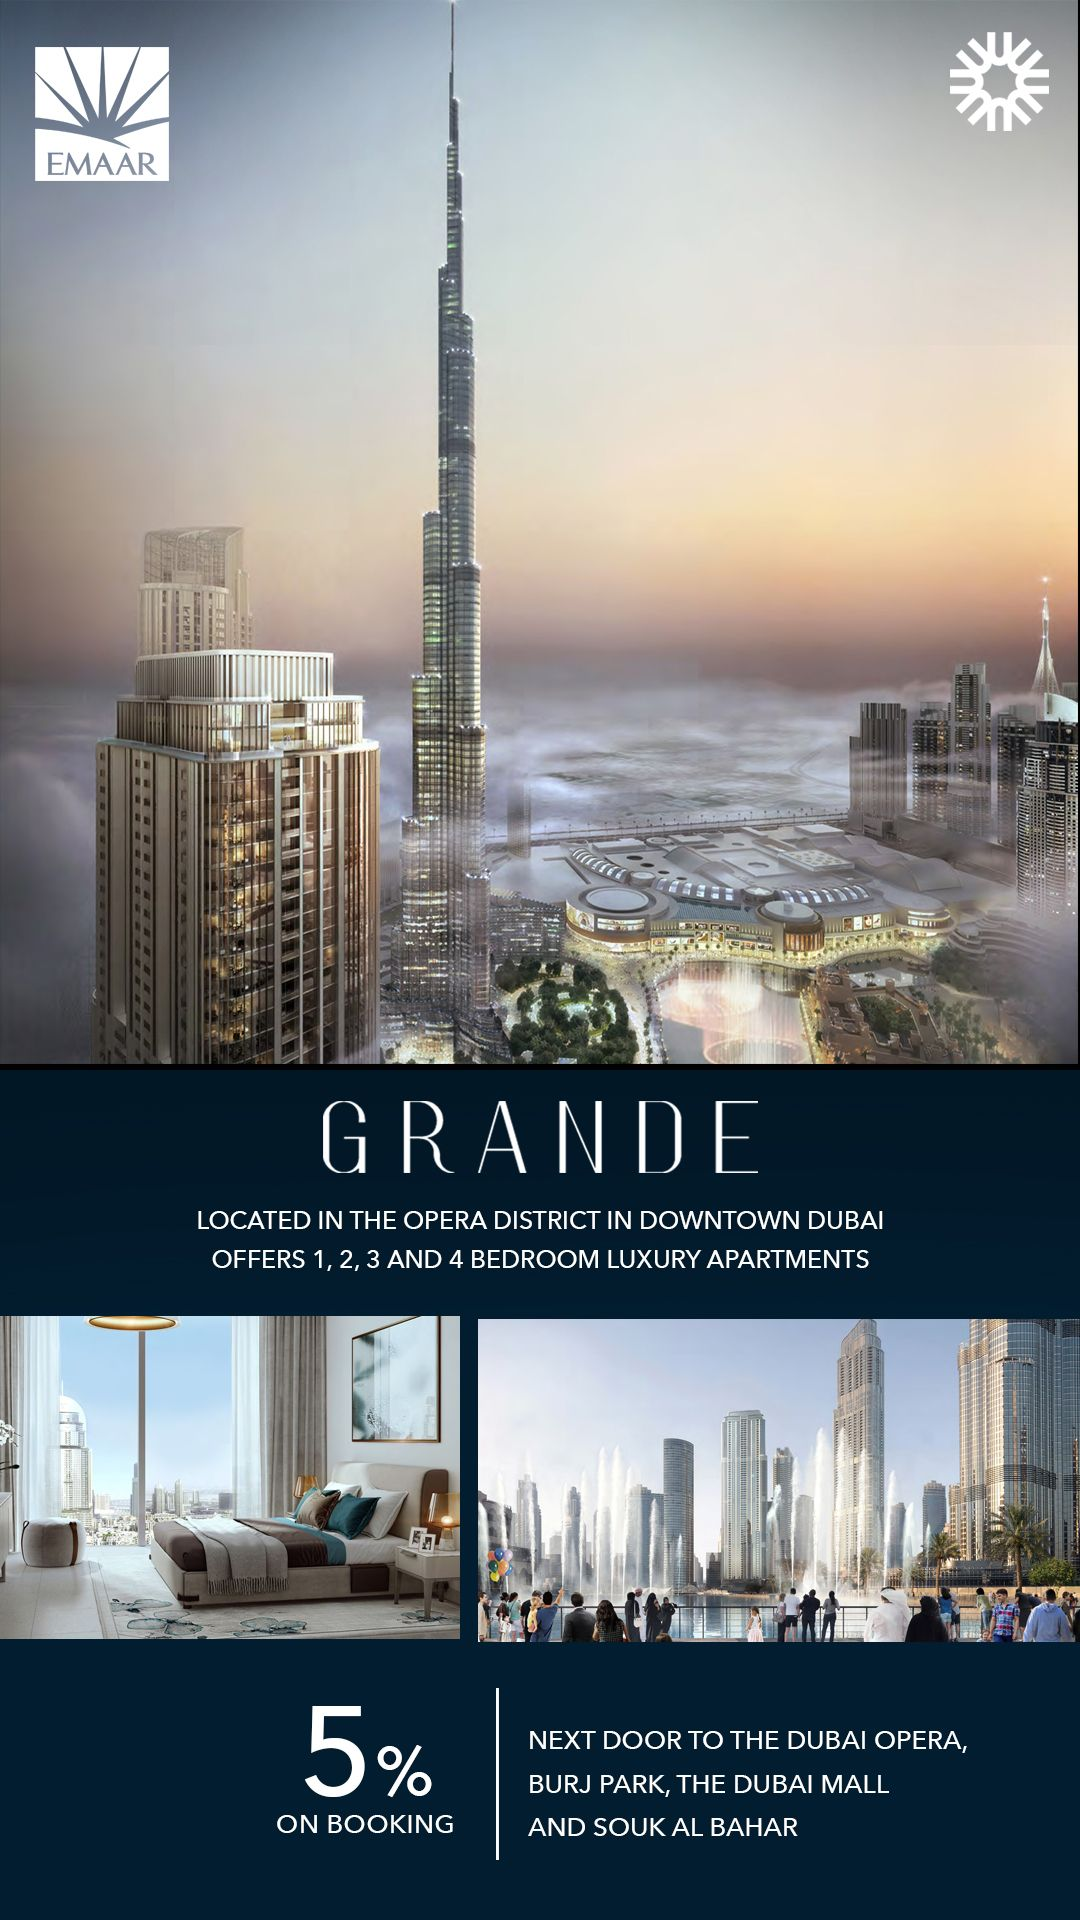 Grande Blends World Beating Views Of Burj Khalifa And The Dubai Fountain With A Class Lifestyle Select Between One Two Three Four Bedroom